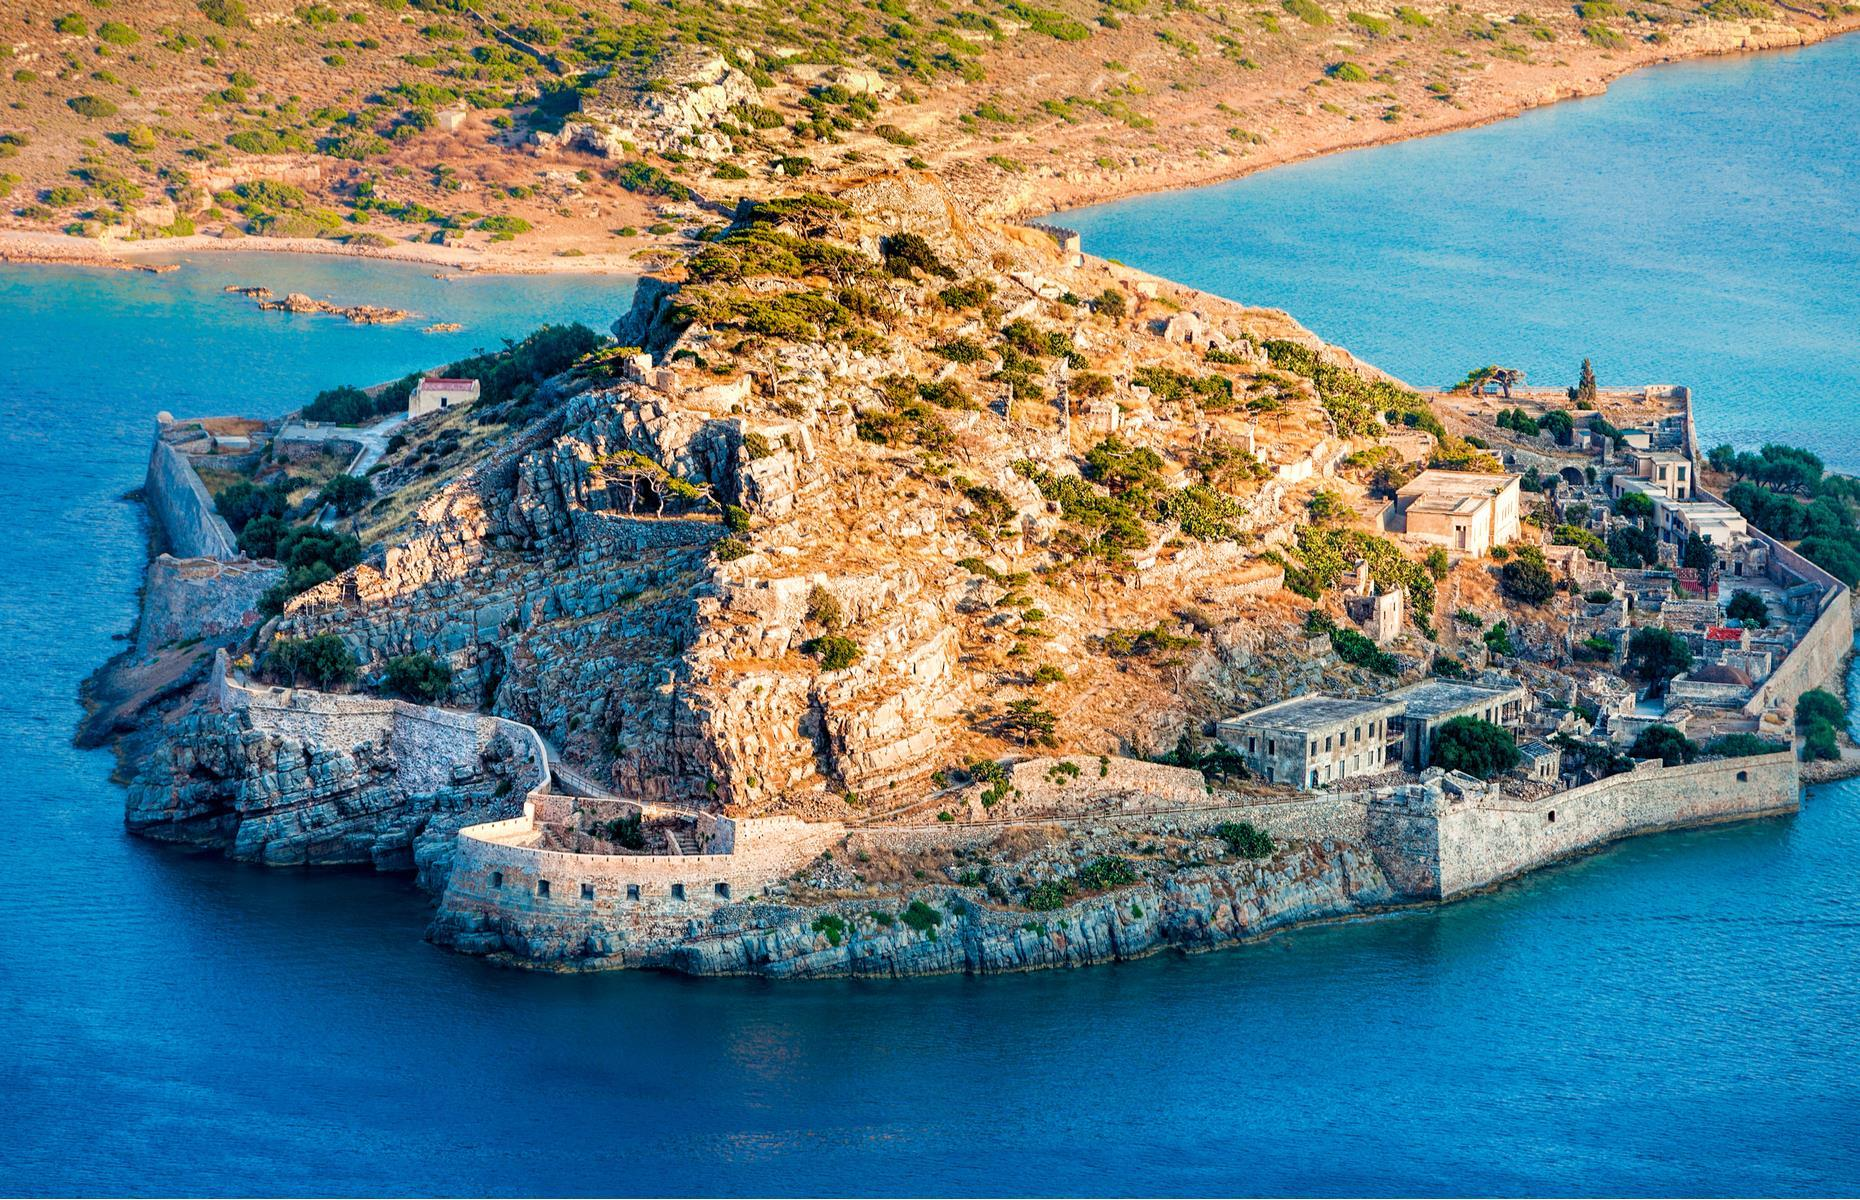 Slide 13 of 52: Bathed in sunlight and lapped by the azure waters of the Aegean, this uninhabited craggy islet off the shores of Crete might look idyllic but it hides an ugly past. From the early 1900s, the 16th-century fortress of Spinalonga was used as a leper colony. Hundreds of sufferers were banished here to live out their lives with reports that there was only a single doctor who visited only sporadically. Shrouded in tales of neglect, the colony remained in operation until 1957 andwas Europe's last leper colony.